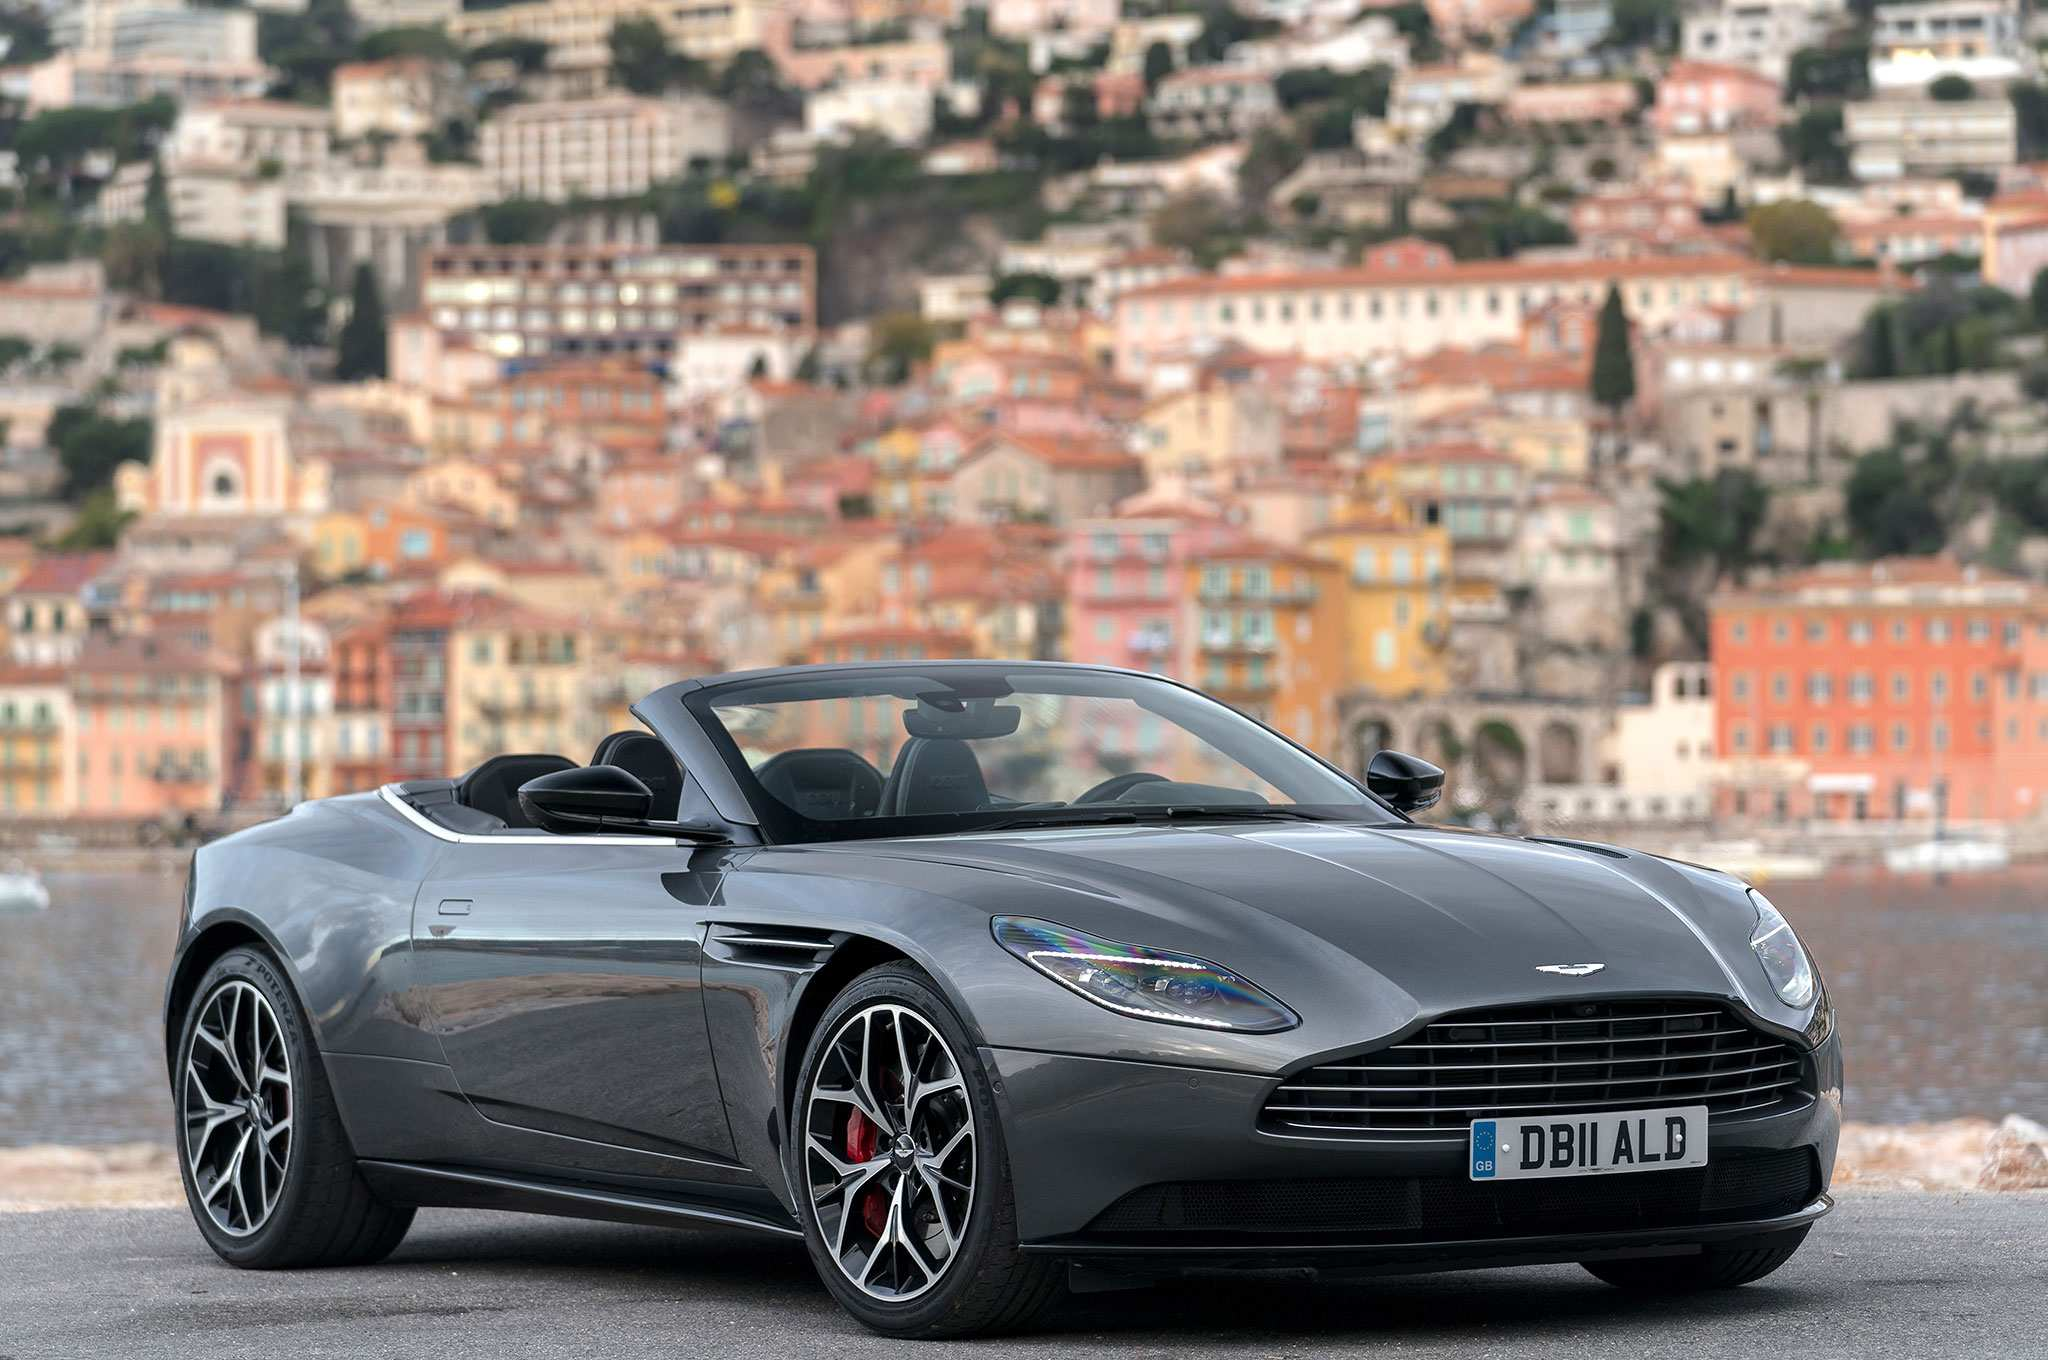 70 Concept of 2019 Aston Martin Db11 Wallpaper for 2019 Aston Martin Db11